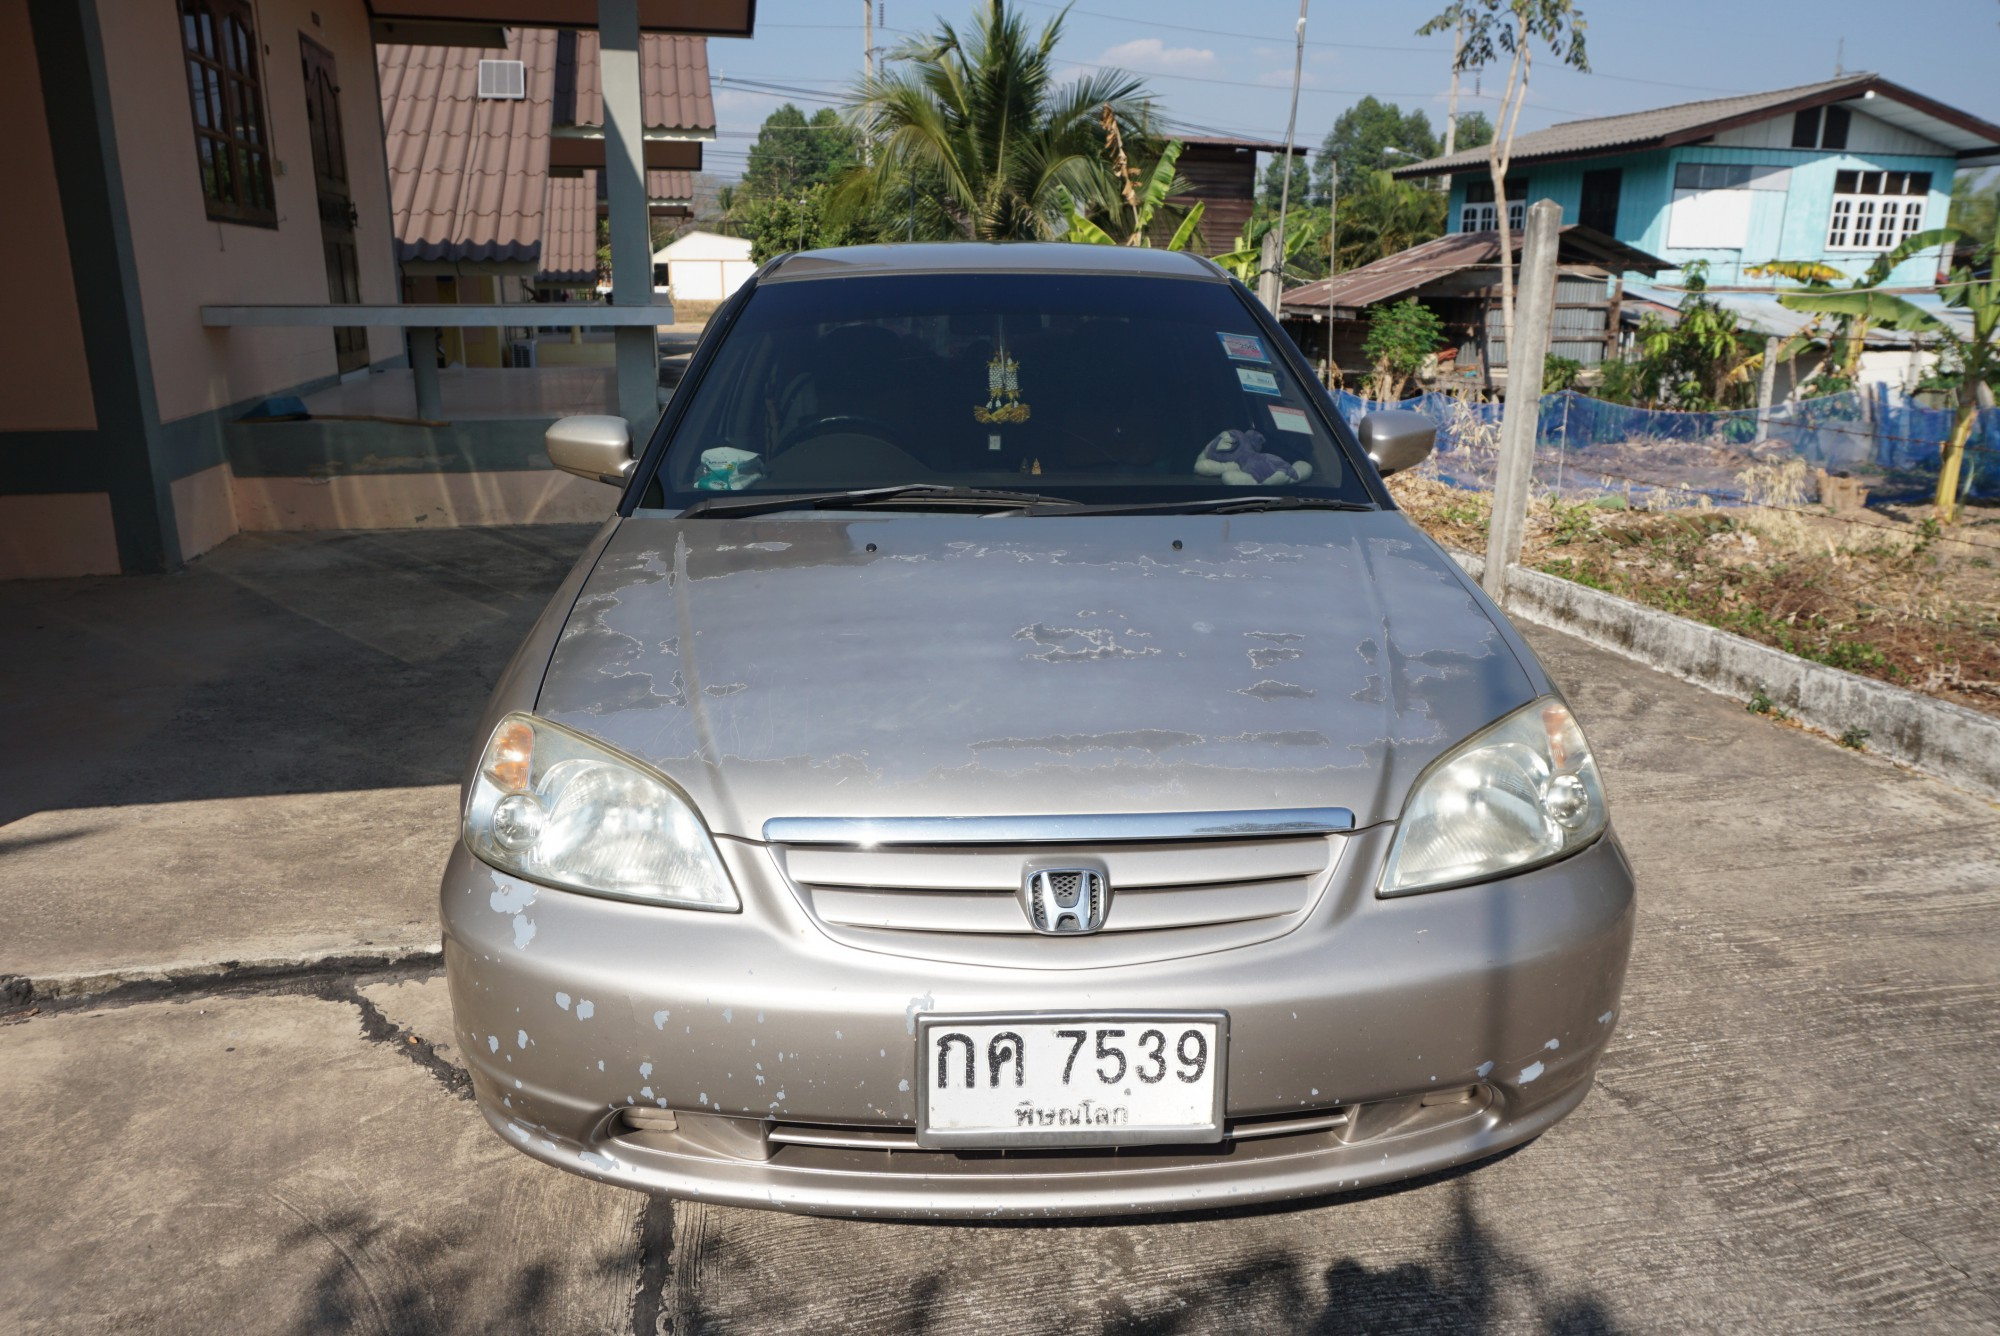 Honda Civic ES (Dimension) ปี 2001 สีทอง